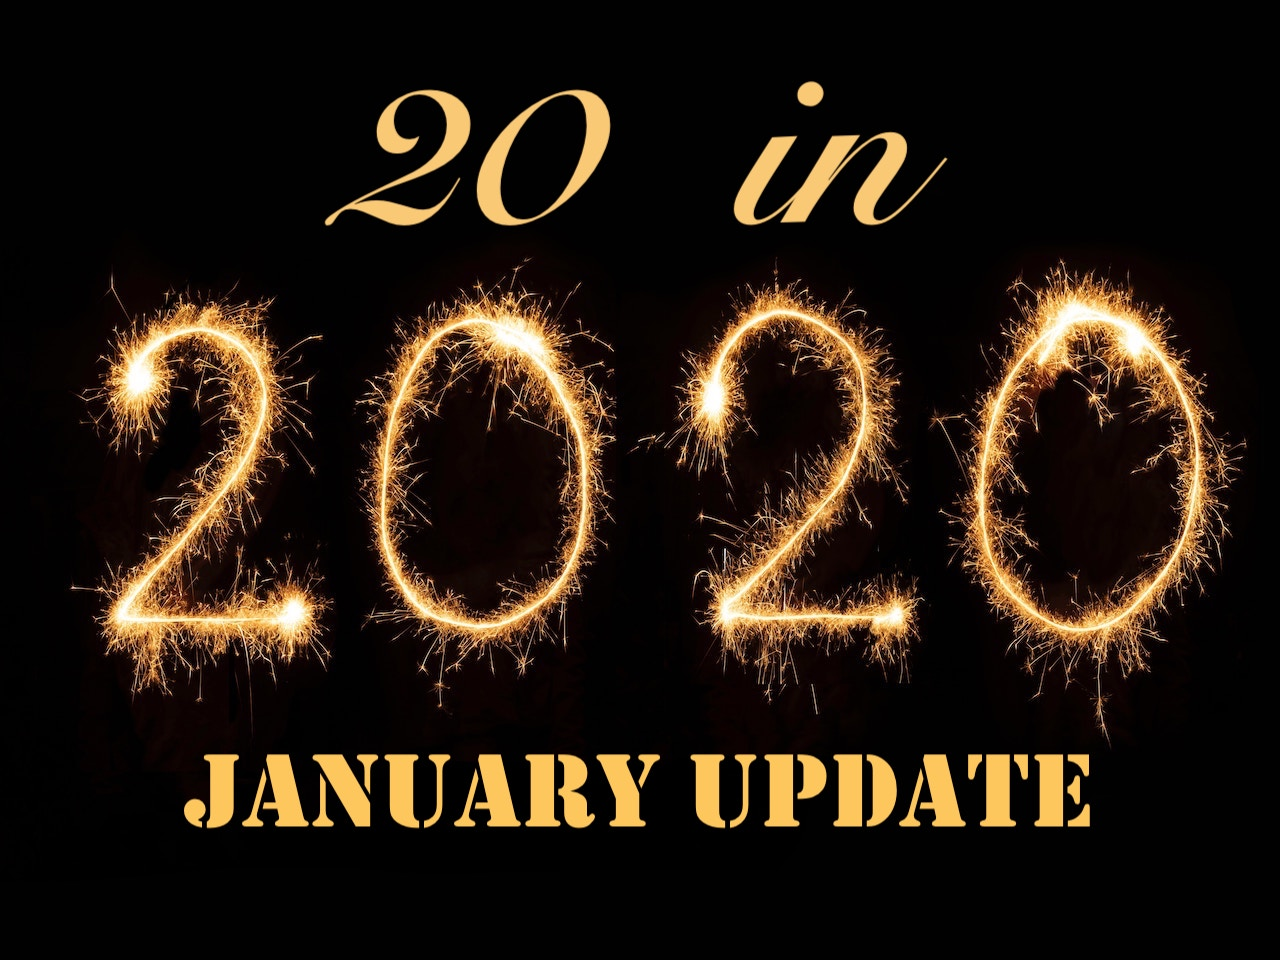 January Update on 20 in 2020